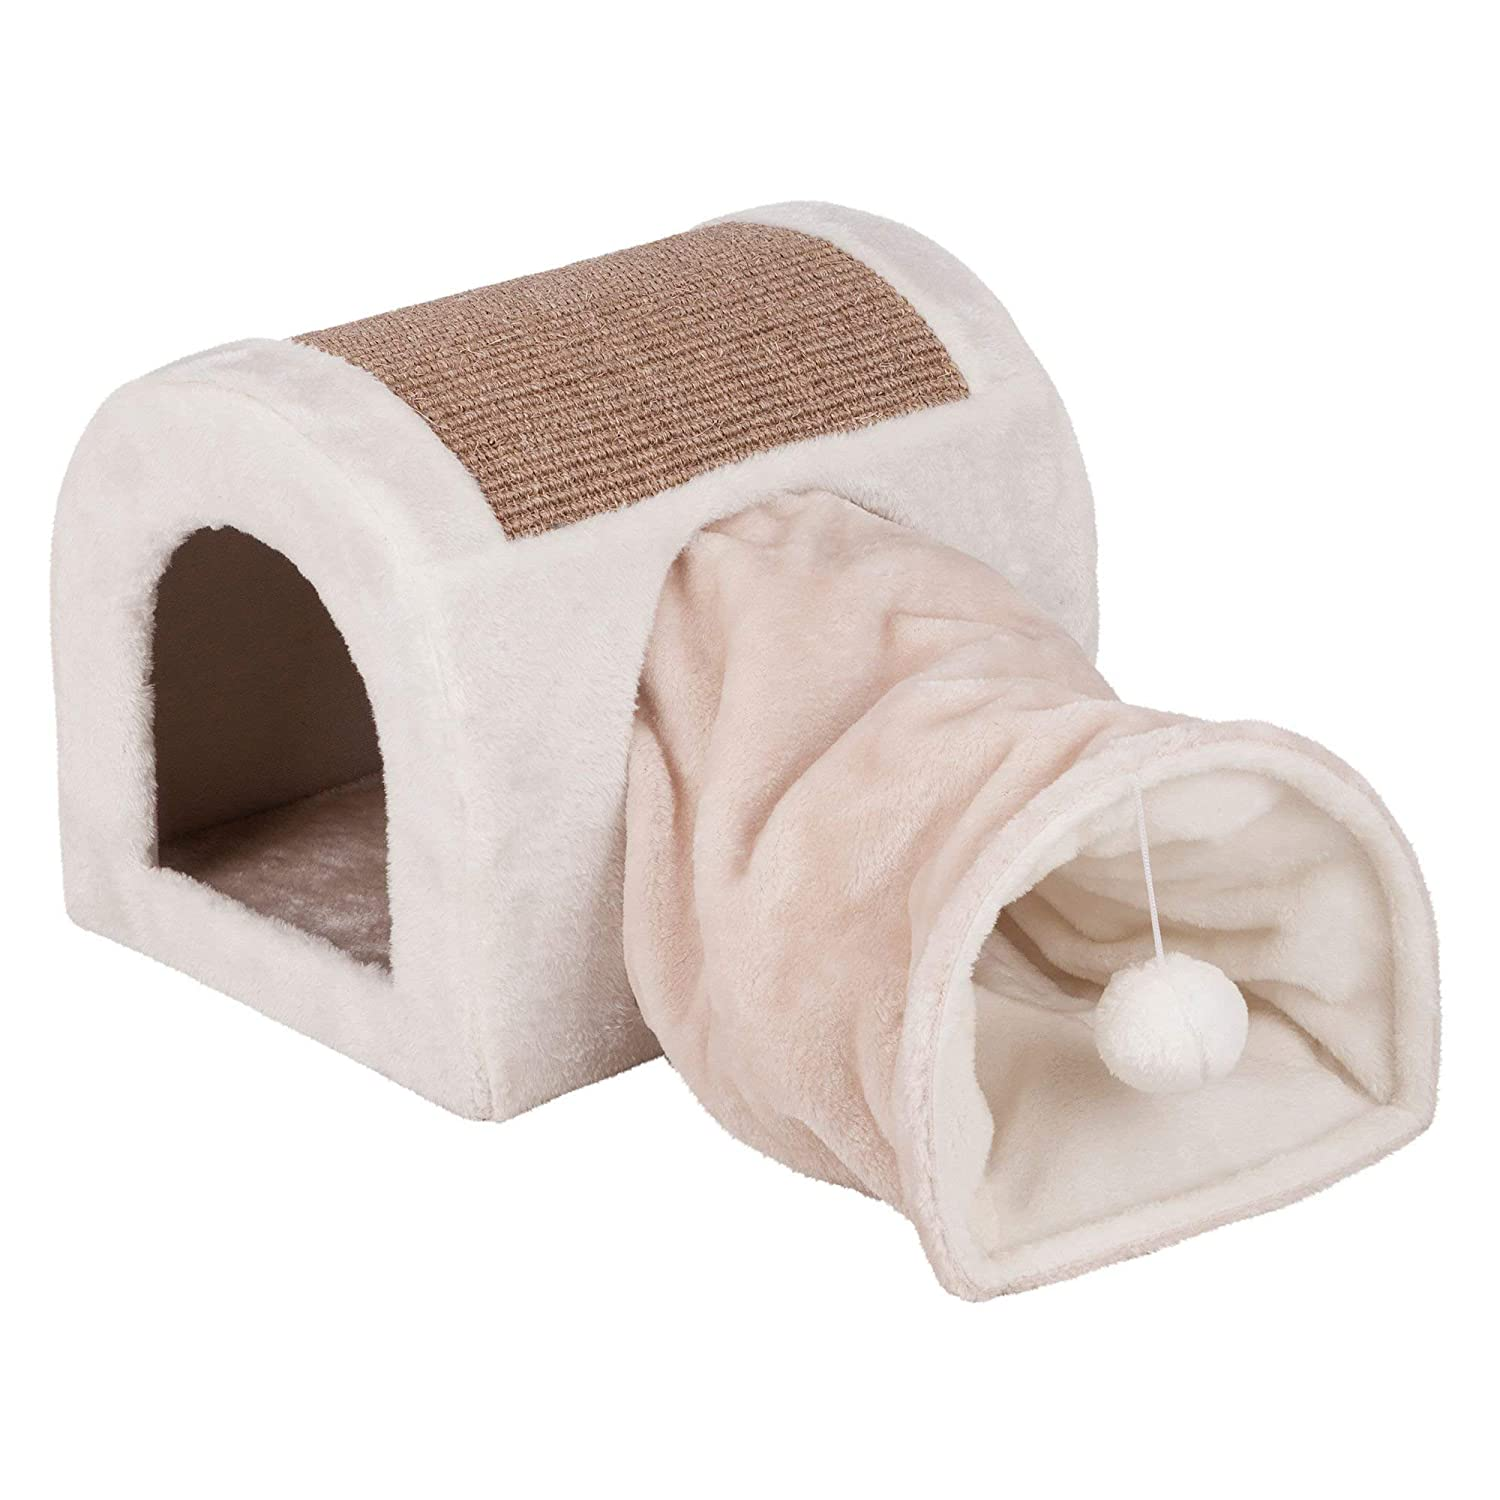 Trixie Ladina Cat Bed with Play Tunnel 32 x 32 x 40 cm Light Grey and Taupe